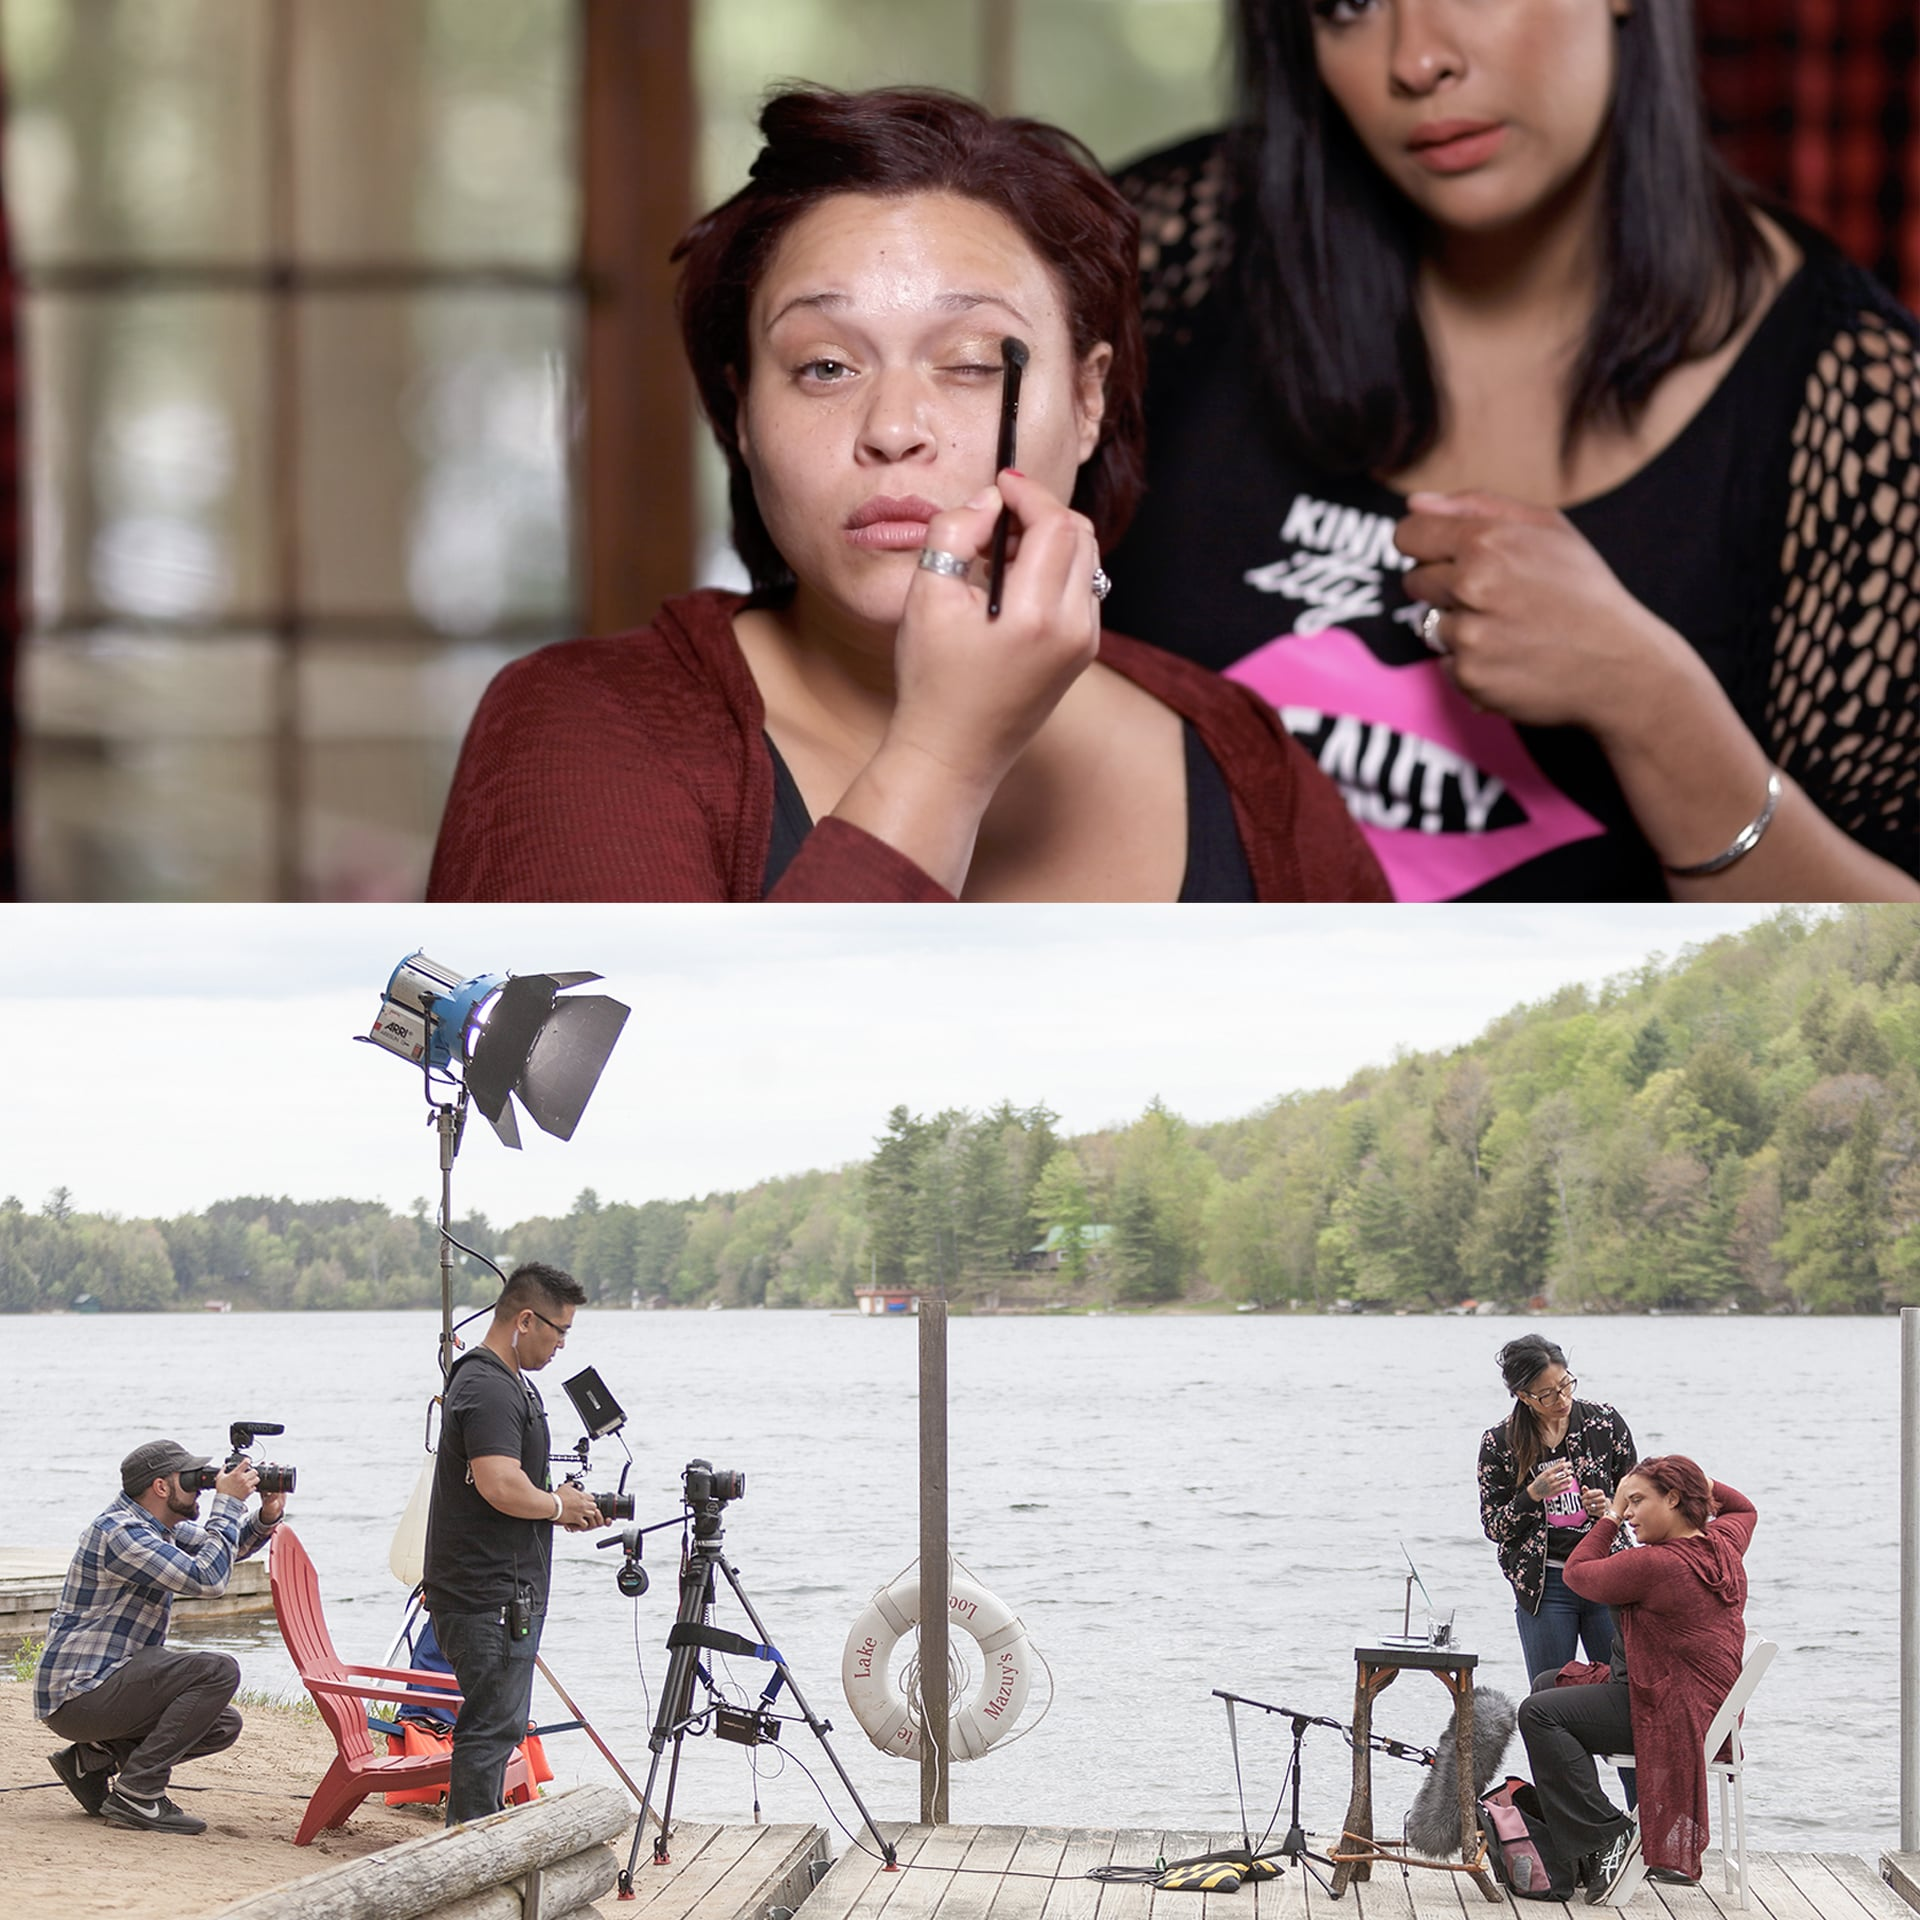 A collage of photos of women having makeup done at a house by a lake